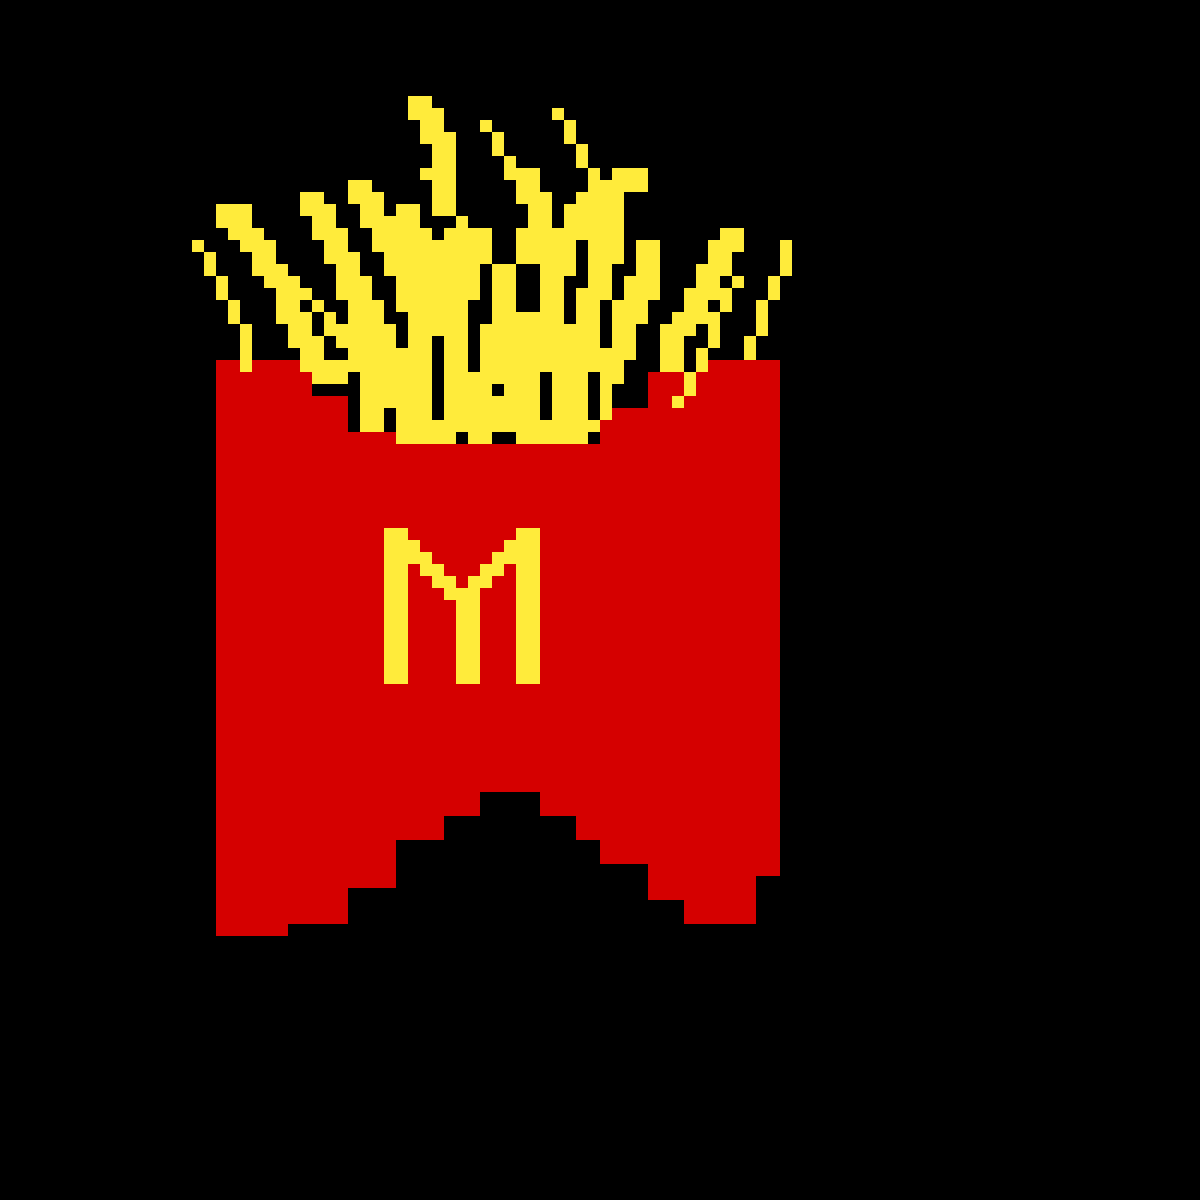 MC fries by Chretien